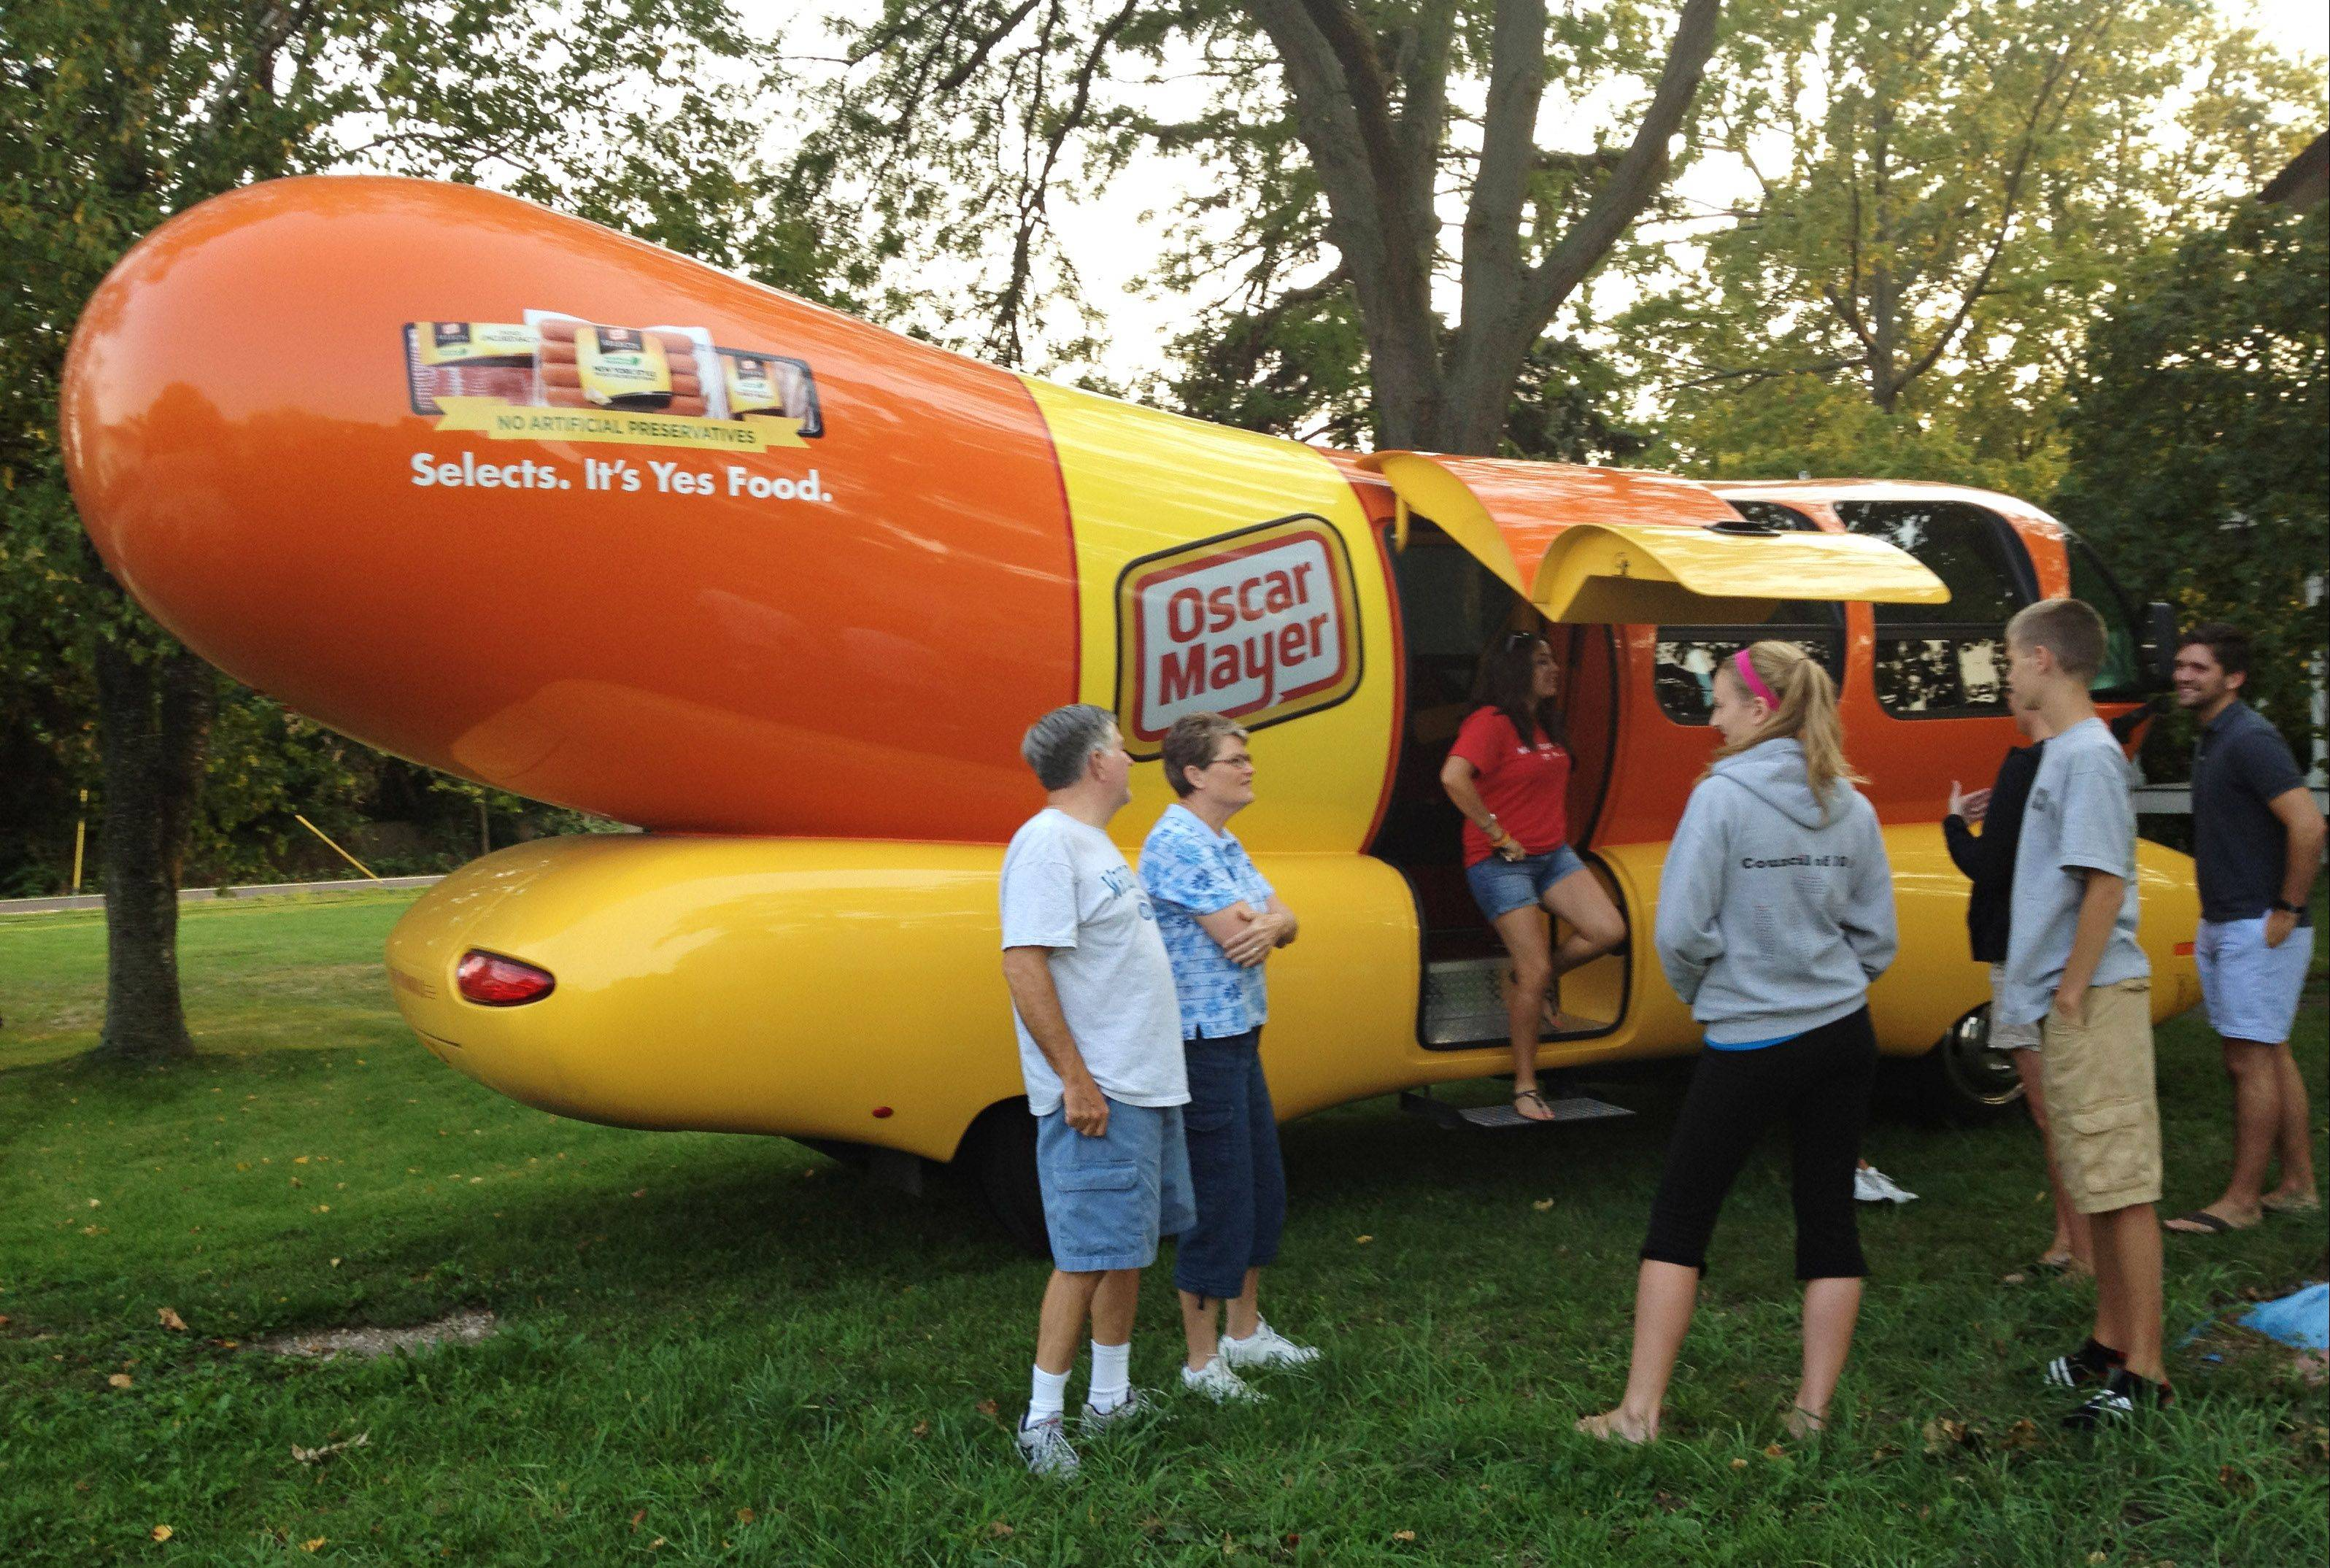 The Wienermobile made a recent stop in Batavia and people immediately came to see the iconic promotional vehicle.